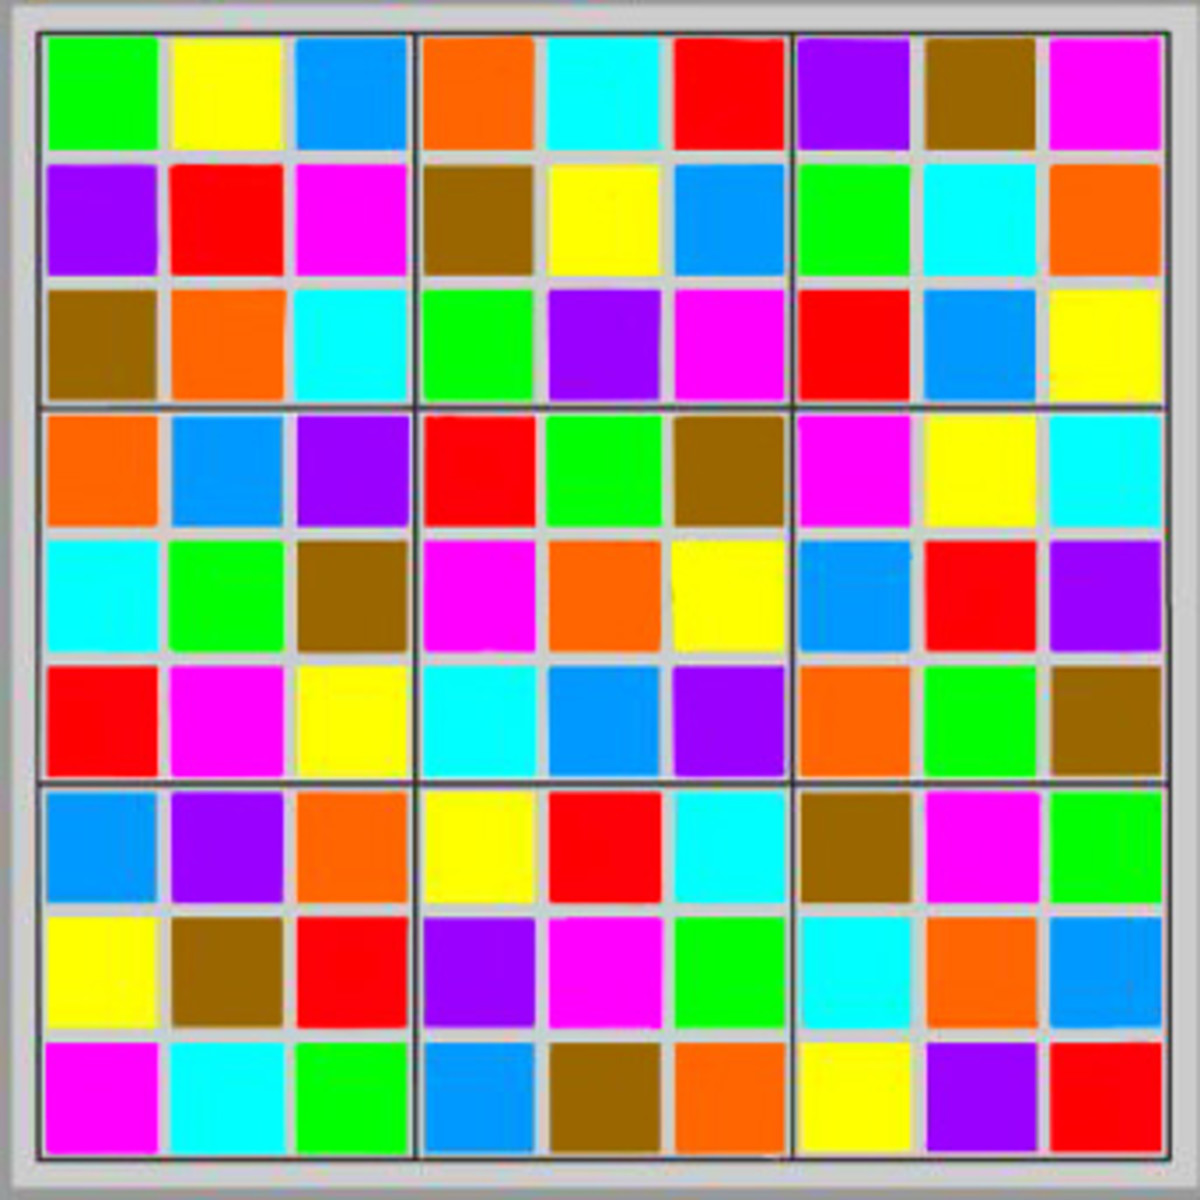 Play Color Sudoku now for free!